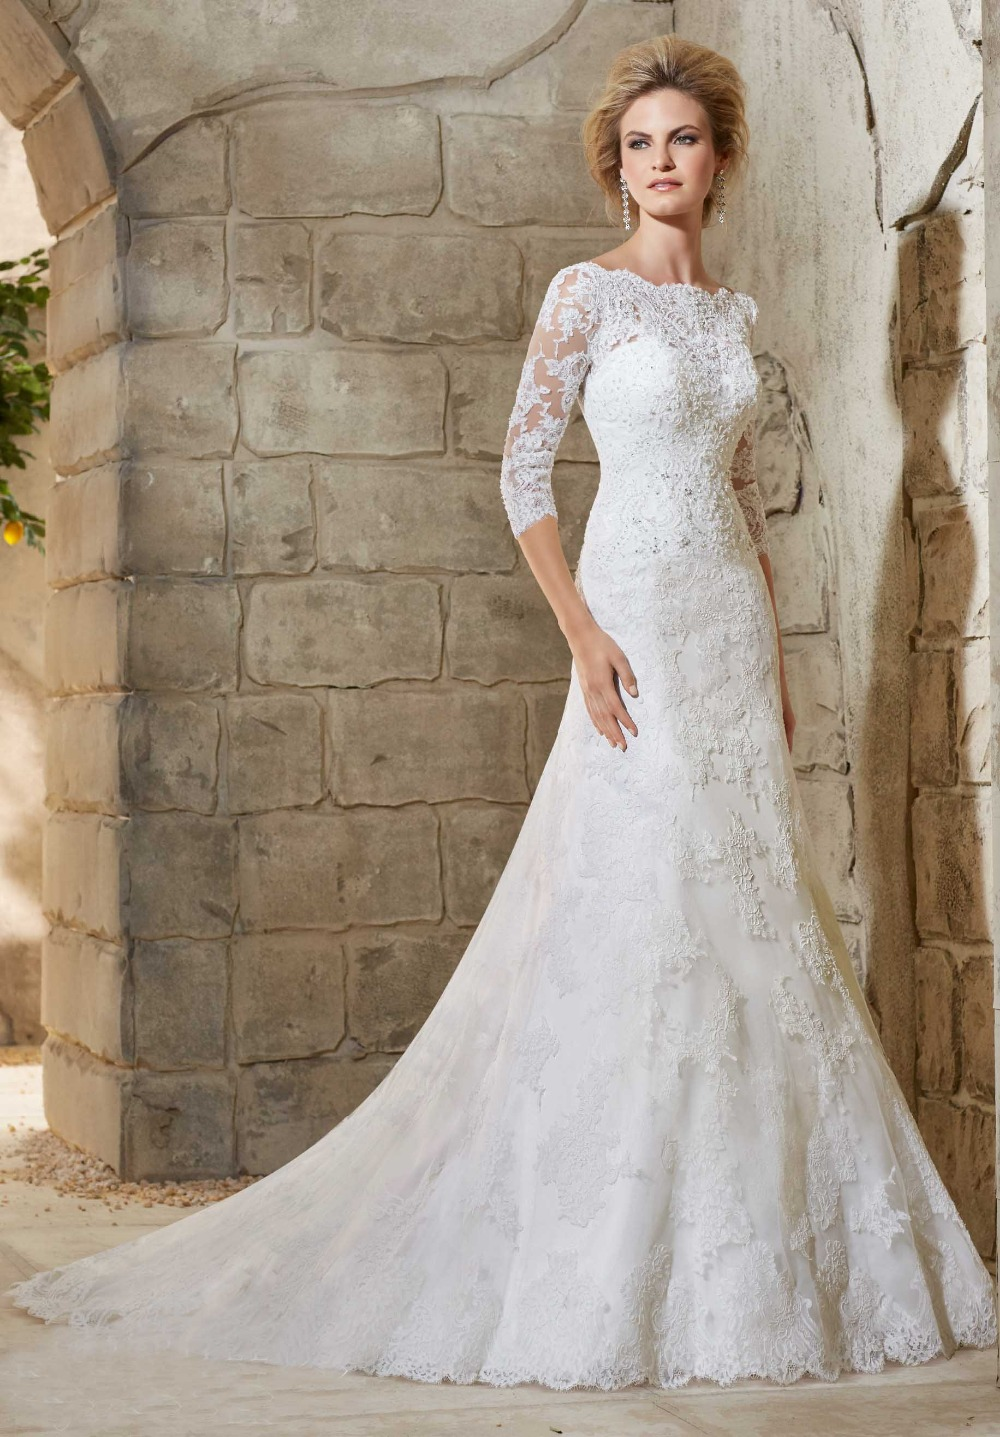 Wedding Dresses 3 4 Sleeves Lace : Sleeve ball gown vestido de noiva romantico boat neck wedding